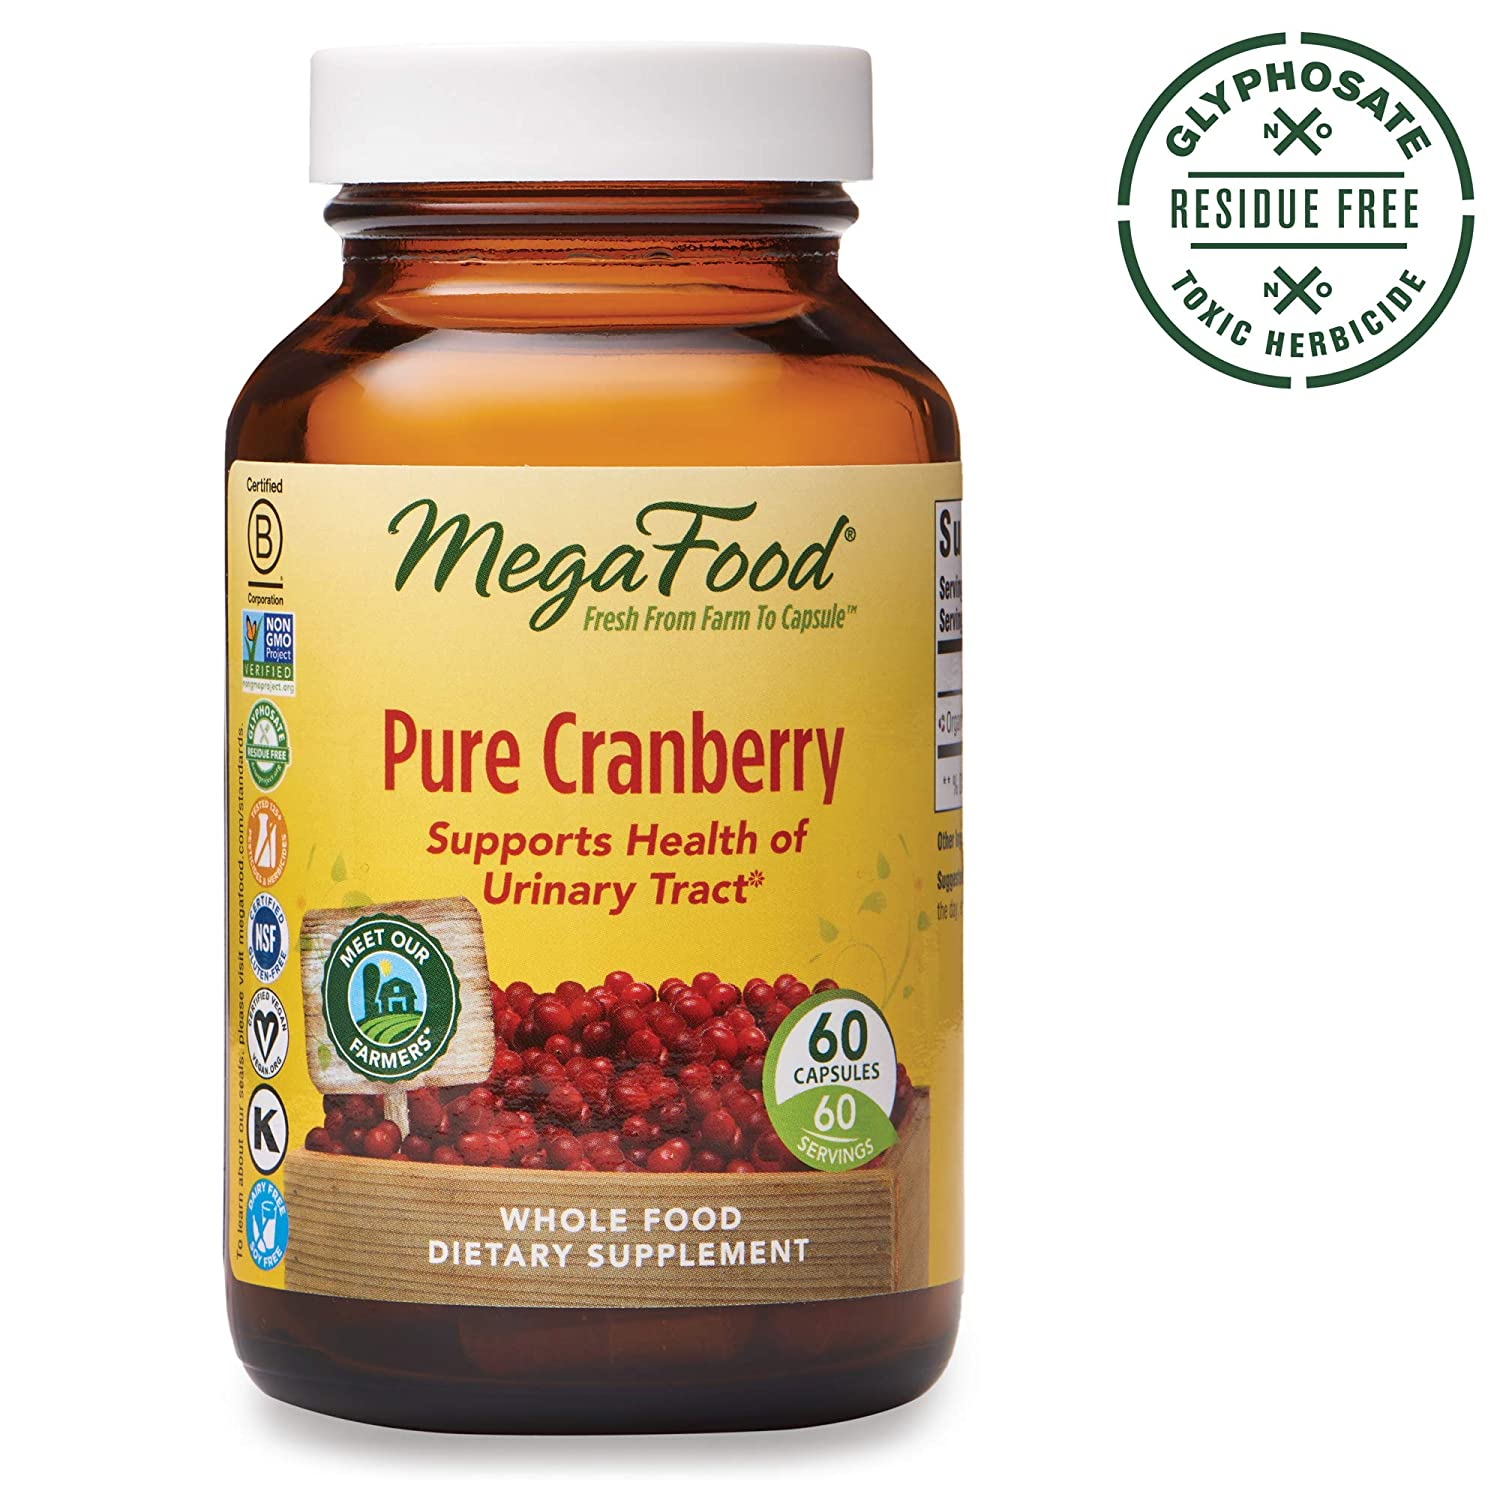 MegaFood, Pure Cranberry, Supports Urinary Tract and Immune Health, Whole Food Supplement, Gluten Free, Vegan, 60 Capsules 60 Servings FFP